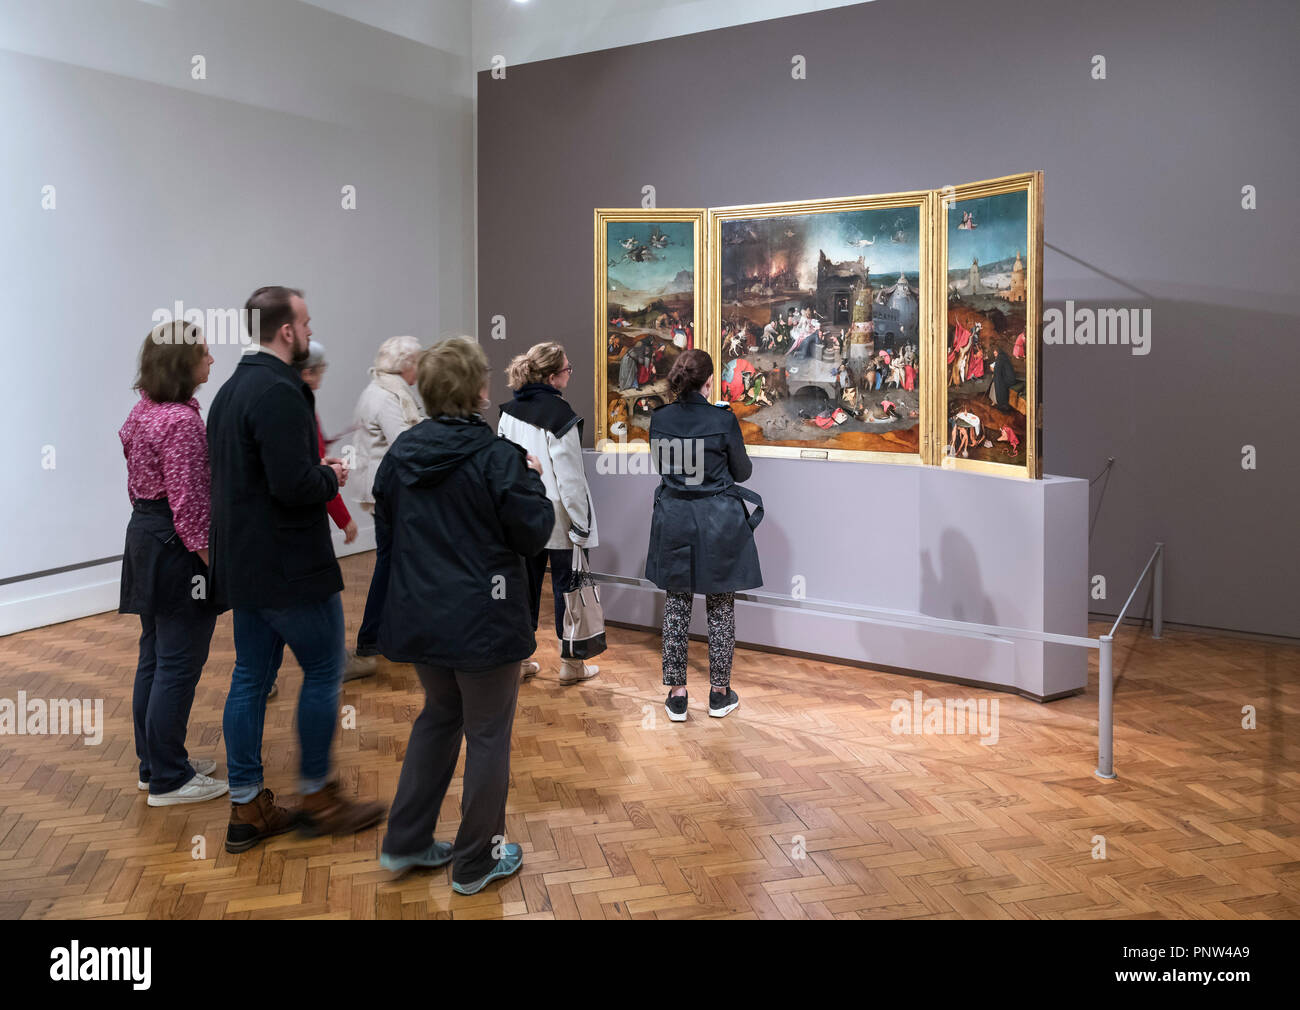 Visitors looking at the painting 'The Temptation of St Anthony' by Hieronymus Bosch, Museu Nacional de Arte Antiga (National Museum of Ancient Art) Li - Stock Image